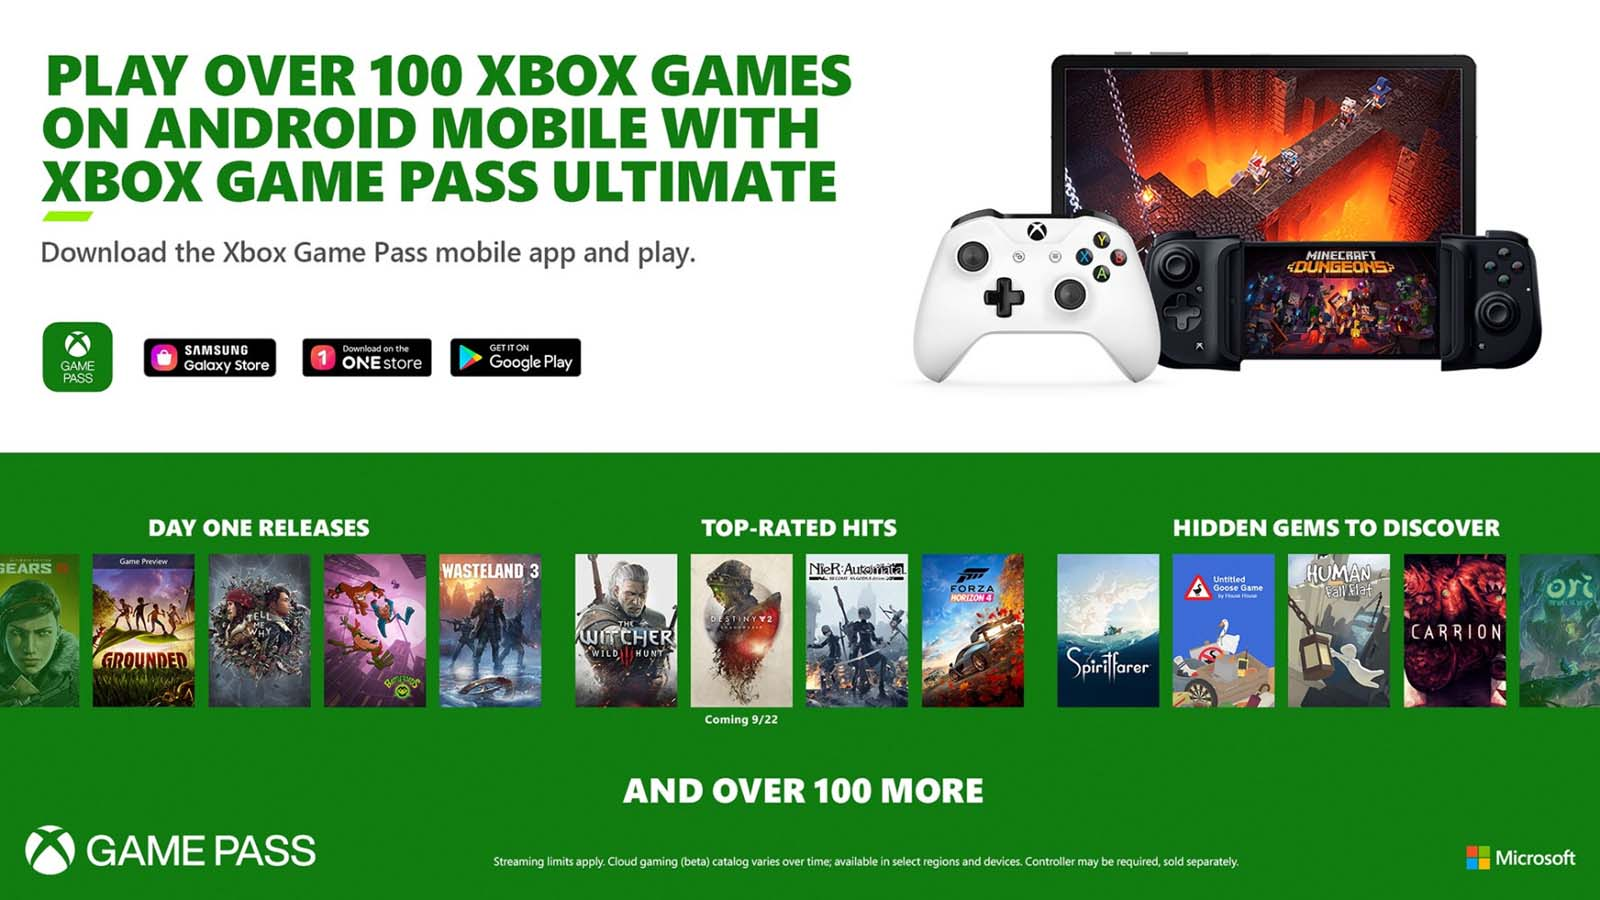 Xbox announces new titles coming to Xbox Game Pass